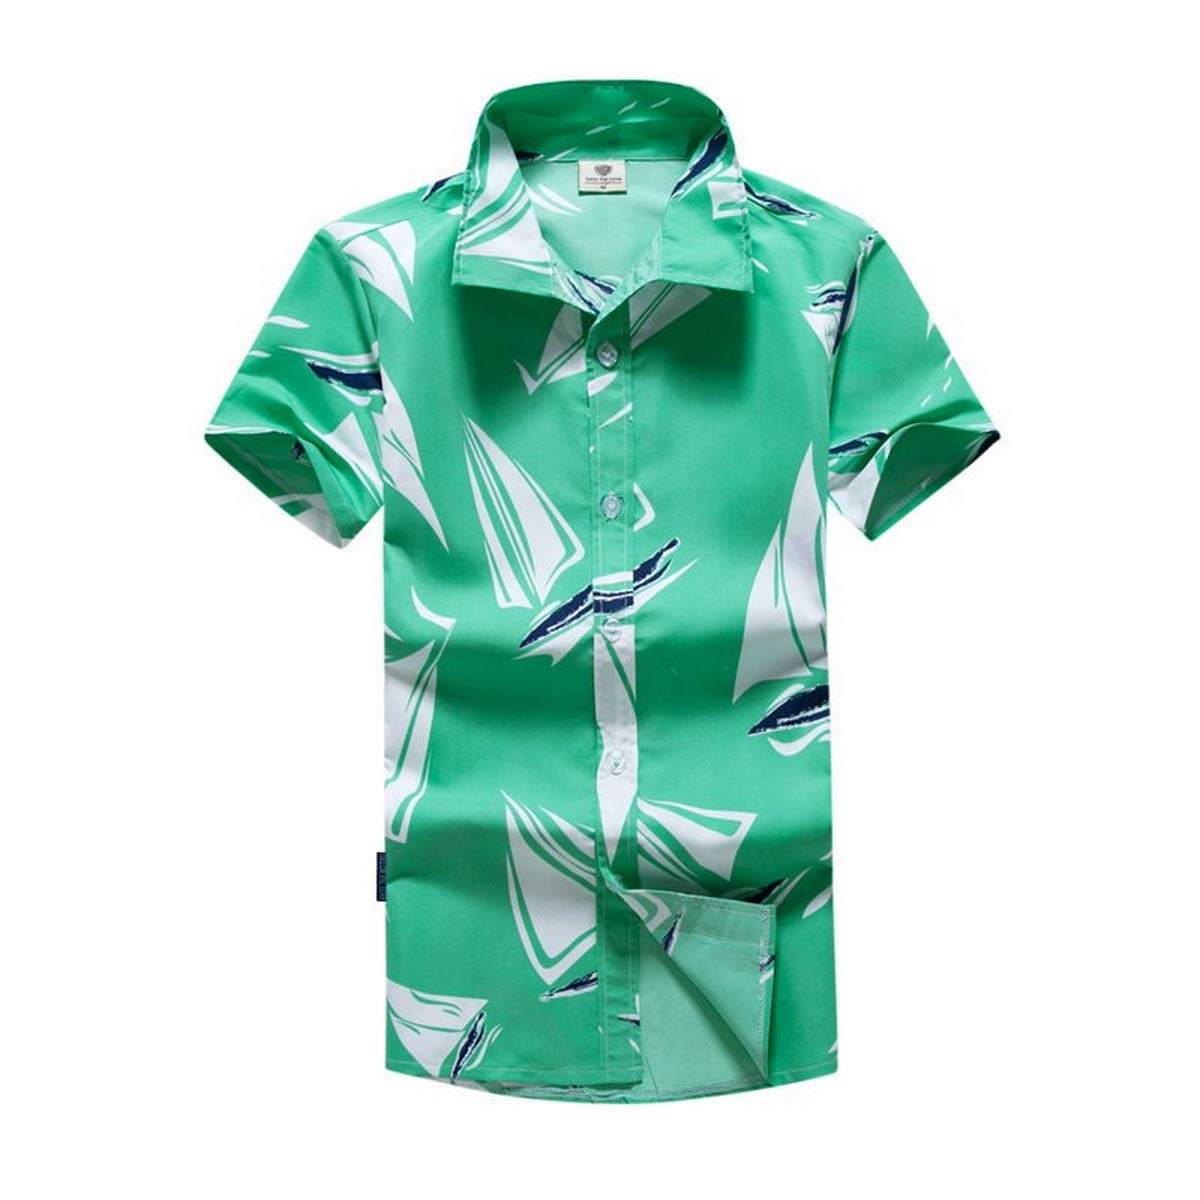 22d7f03d Hawaiian Shirts for Men Retro Funny Aloha Party Summer Casual Floral  Printed (Sailboat Green 4, XXXL) at Amazon Men's Clothing store: